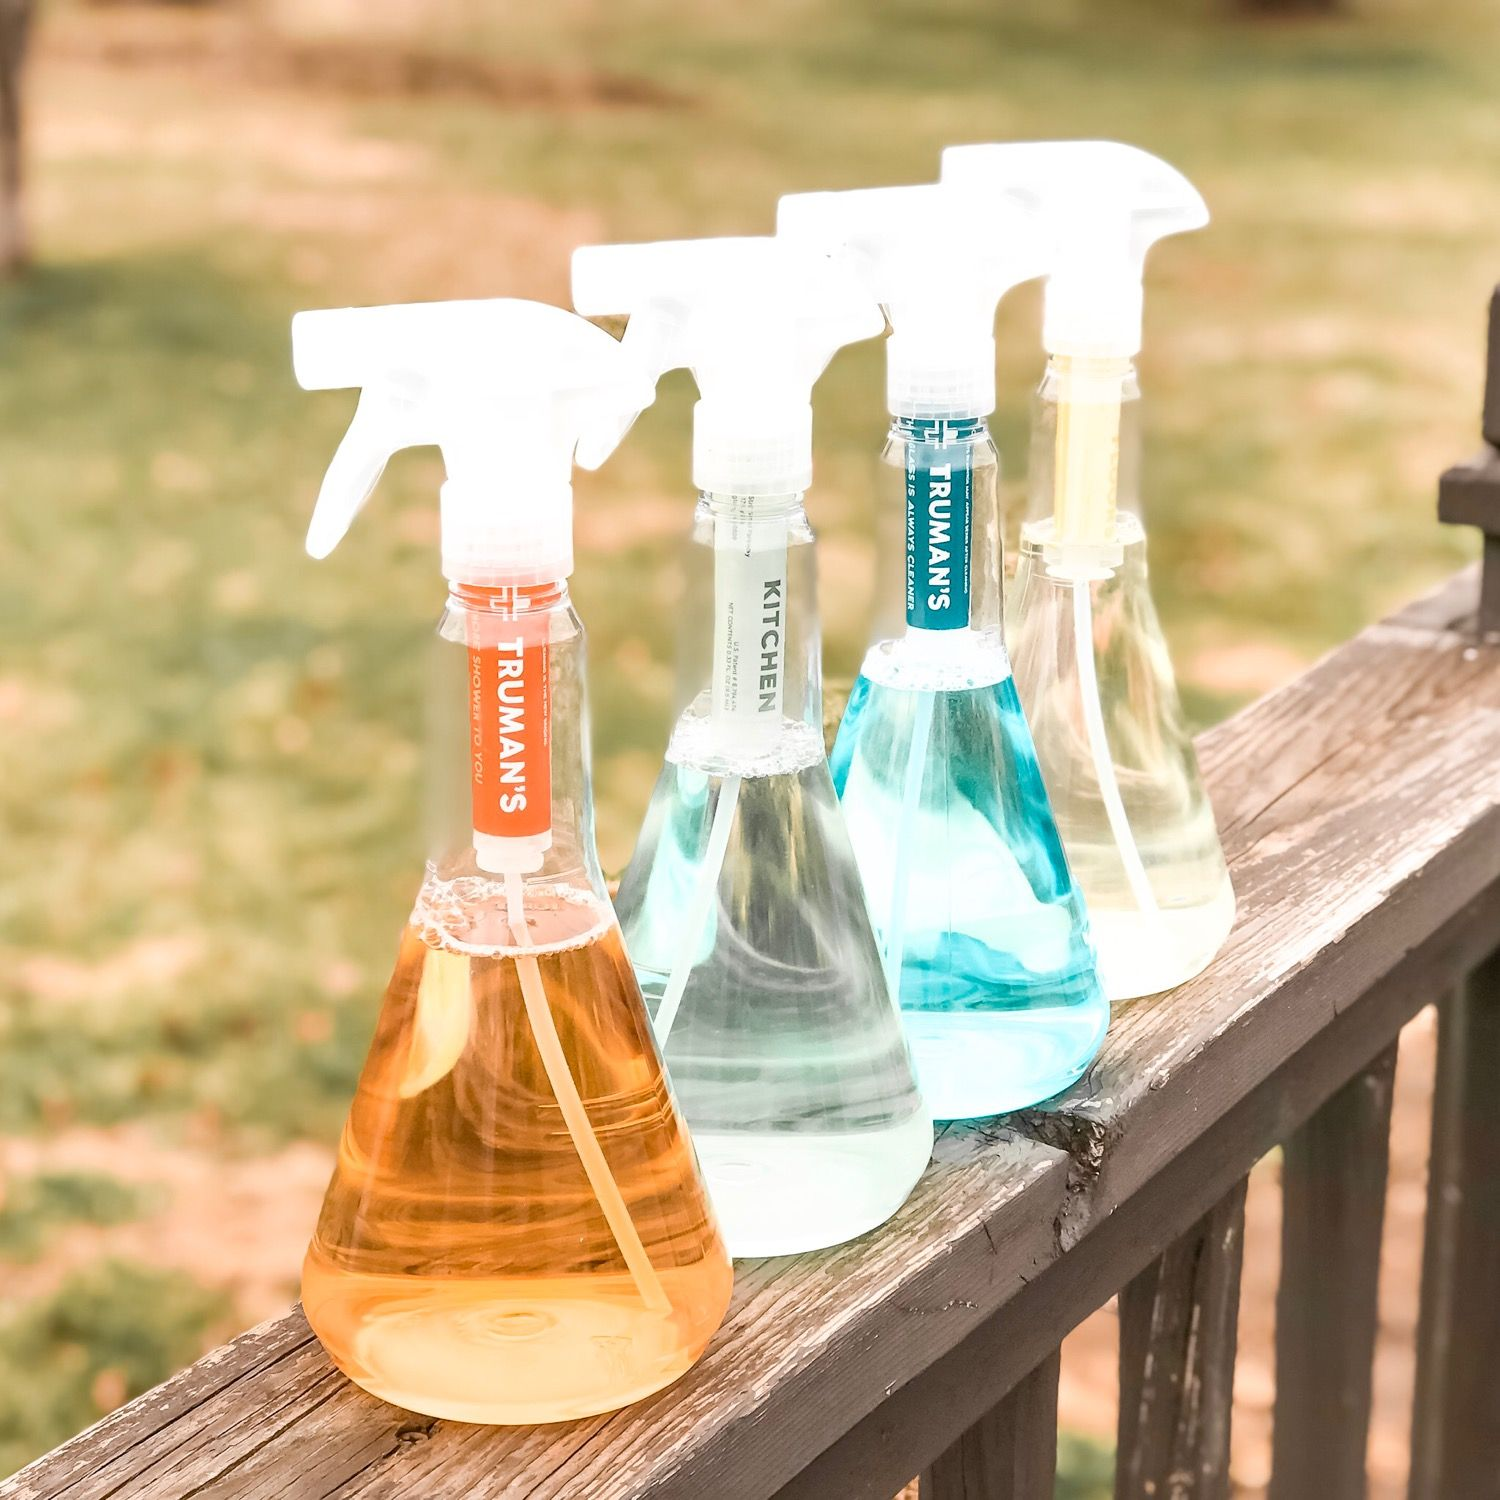 Starter Kit Eco Friendly Cleaning Products Starter Kit Tinted